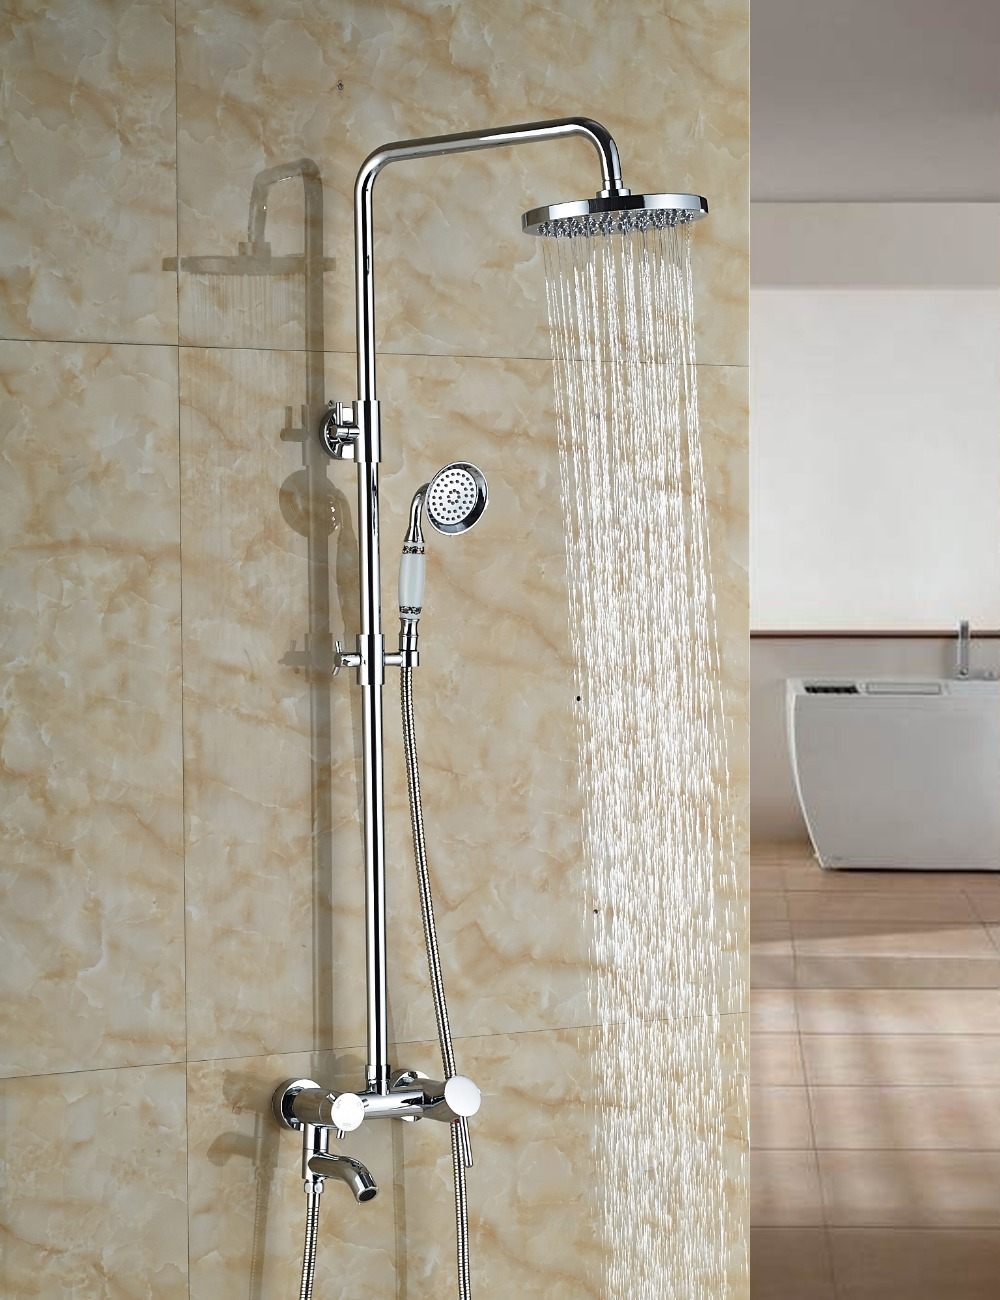 Wholesale And Retail Wall Mounted Chrome Finish Round Rain Shower Head Faucet Single Handle Tub Valve Mixer Tap Shower new chrome 6 rain shower faucet set valve mixer tap ceiling mounted shower set